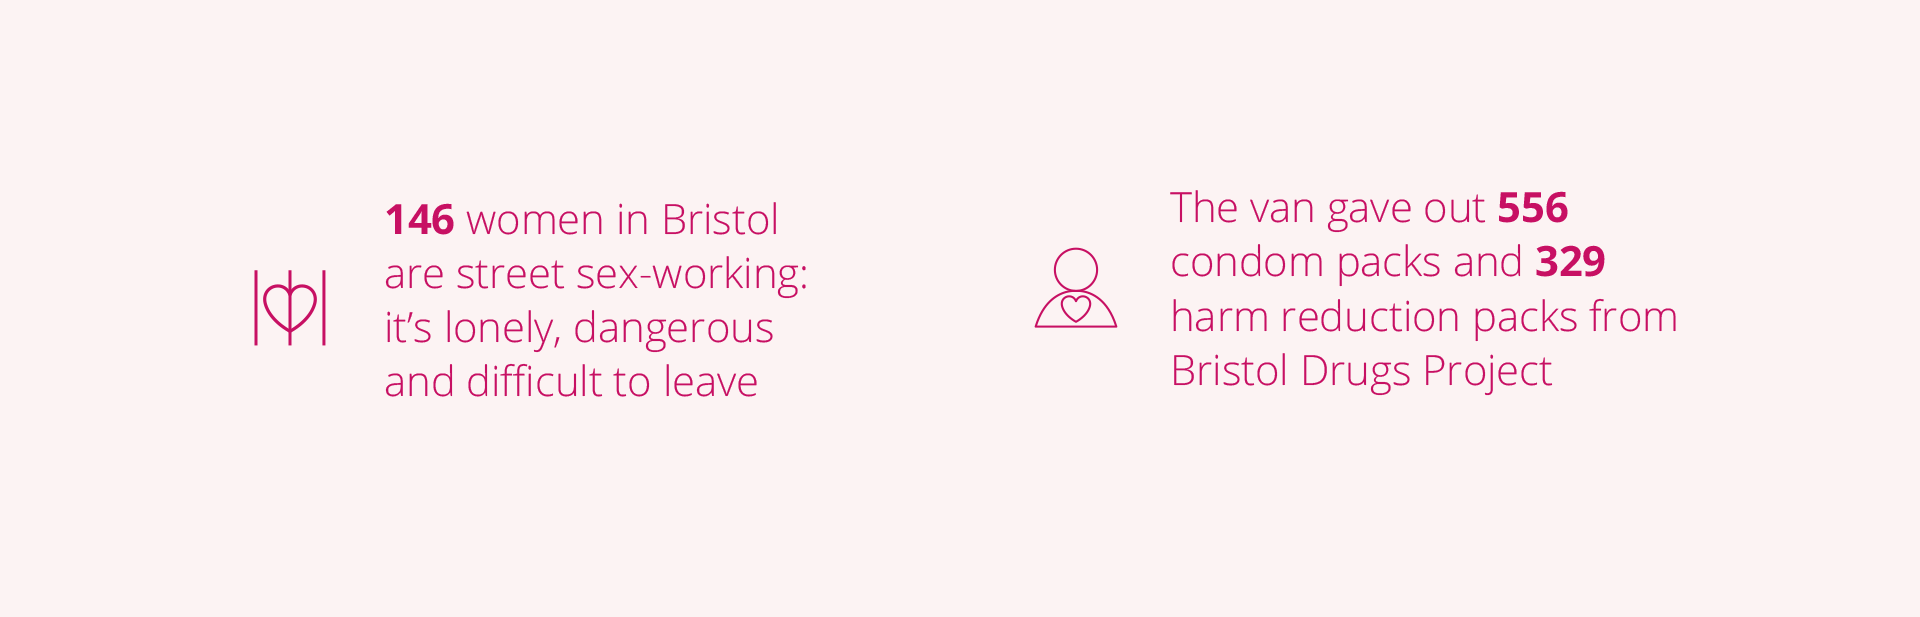 146 women in Bristol are street sex-working; it's dangerous lonely and difficult to leave. The van gave out 556 condom packs and 329 harm reduction packs from Bristol Drugs Project.